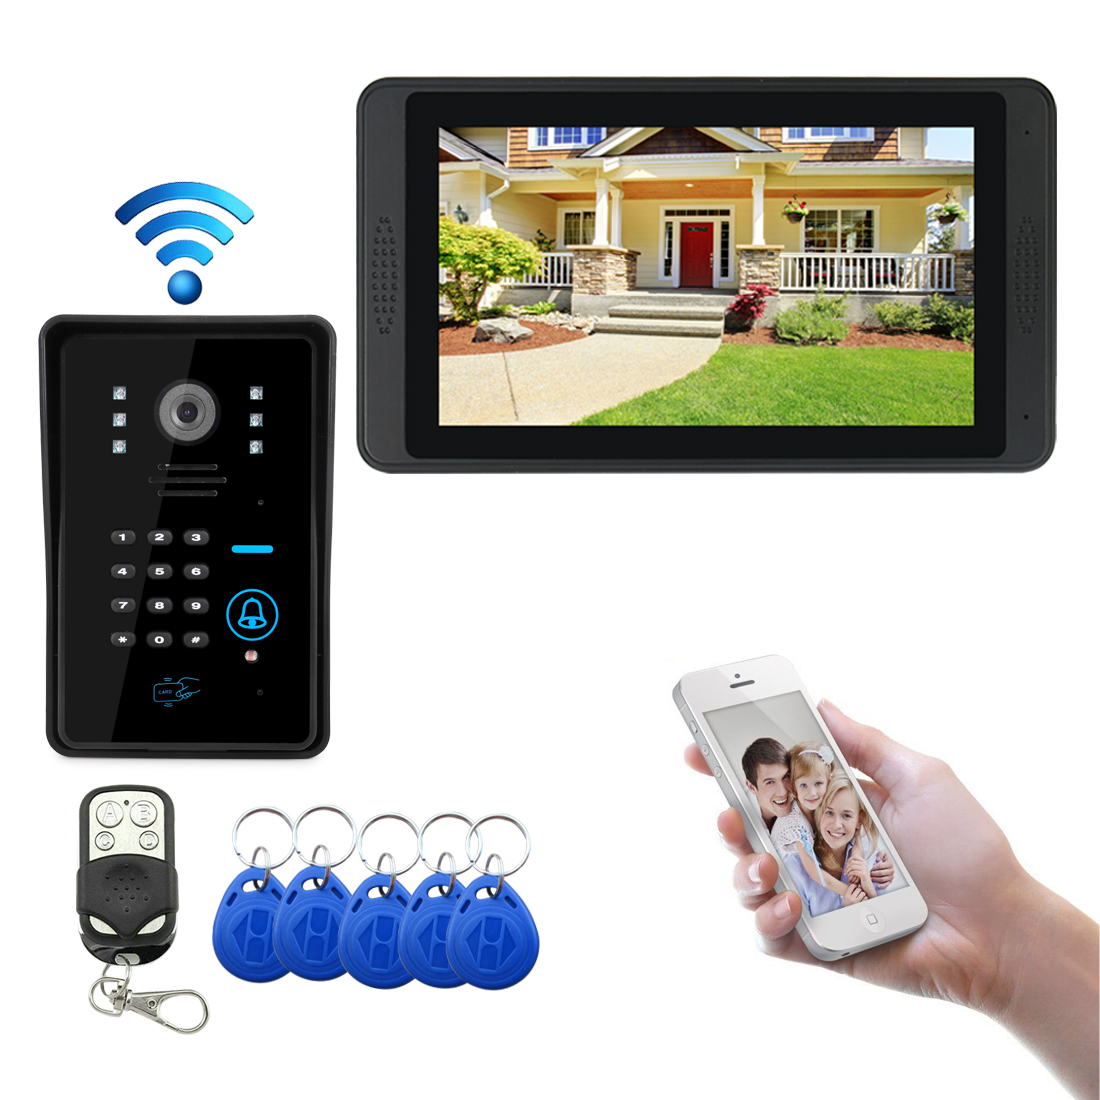 Wifi Camera Video Door Phone Doorbell IP Camera Support 3G/4G IOS Android For IPad Smart Phone Tablet Control Alarm System Kit